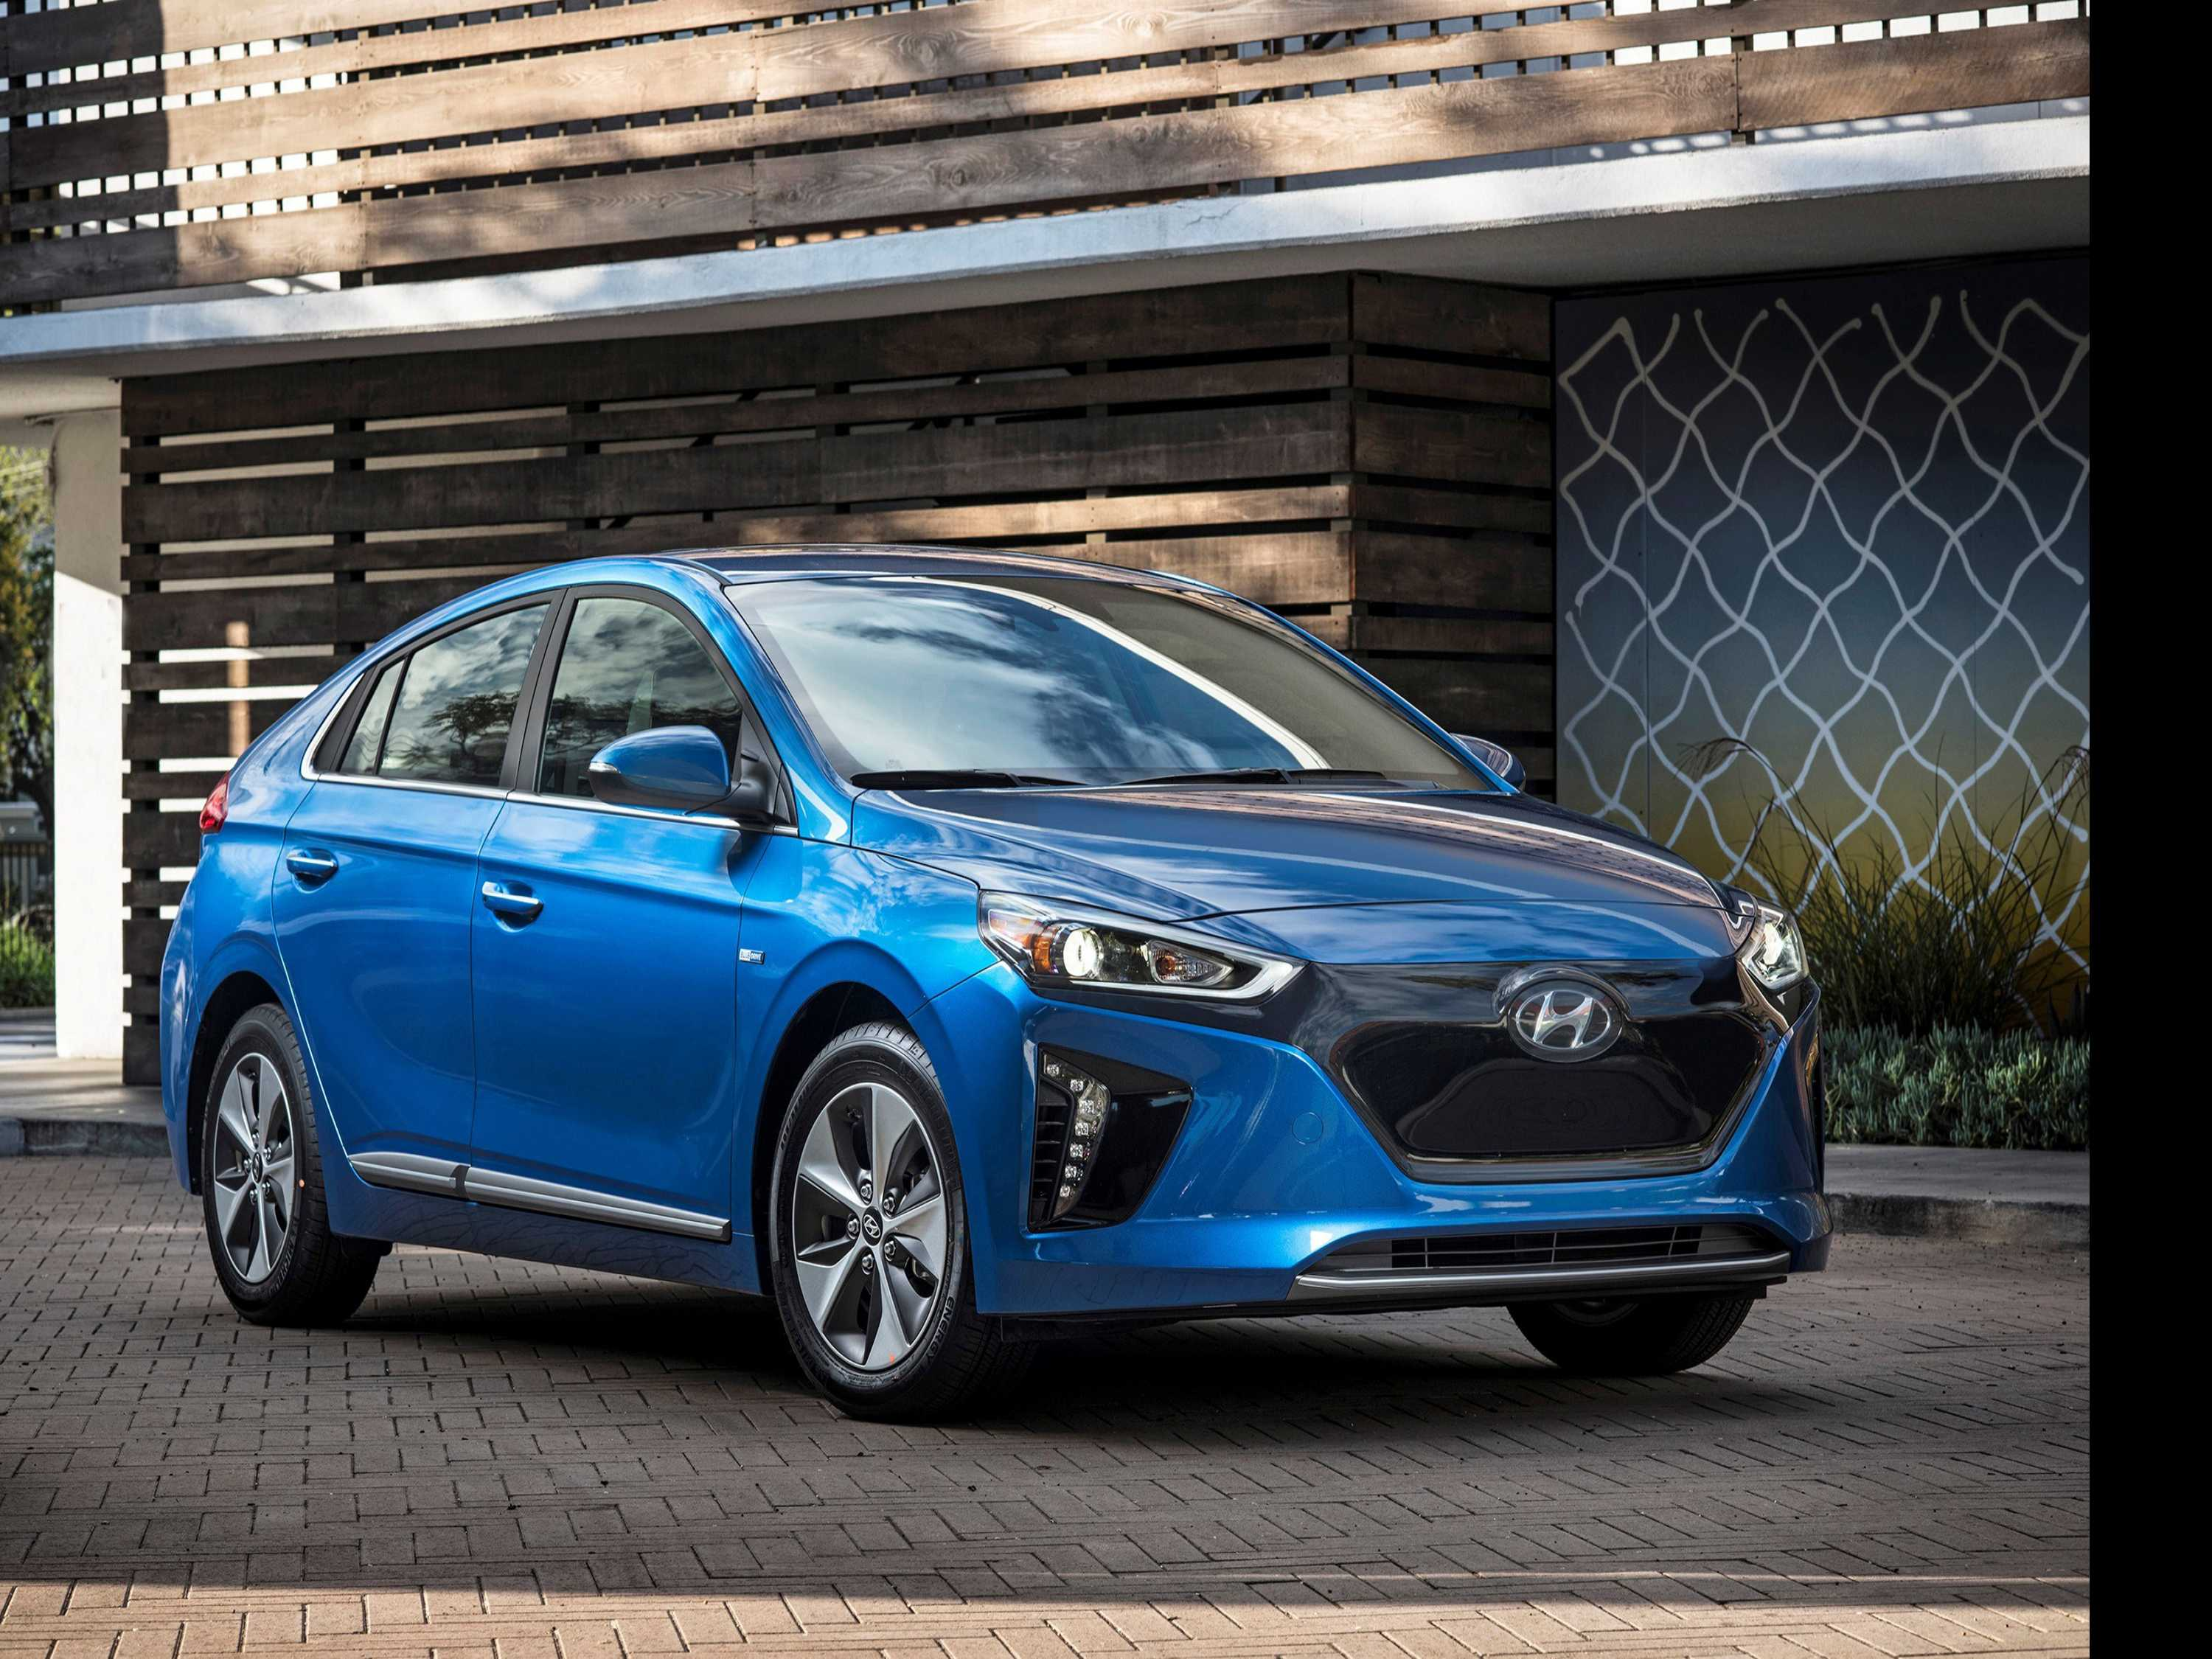 Edmunds: How to Shop for An Electric Car